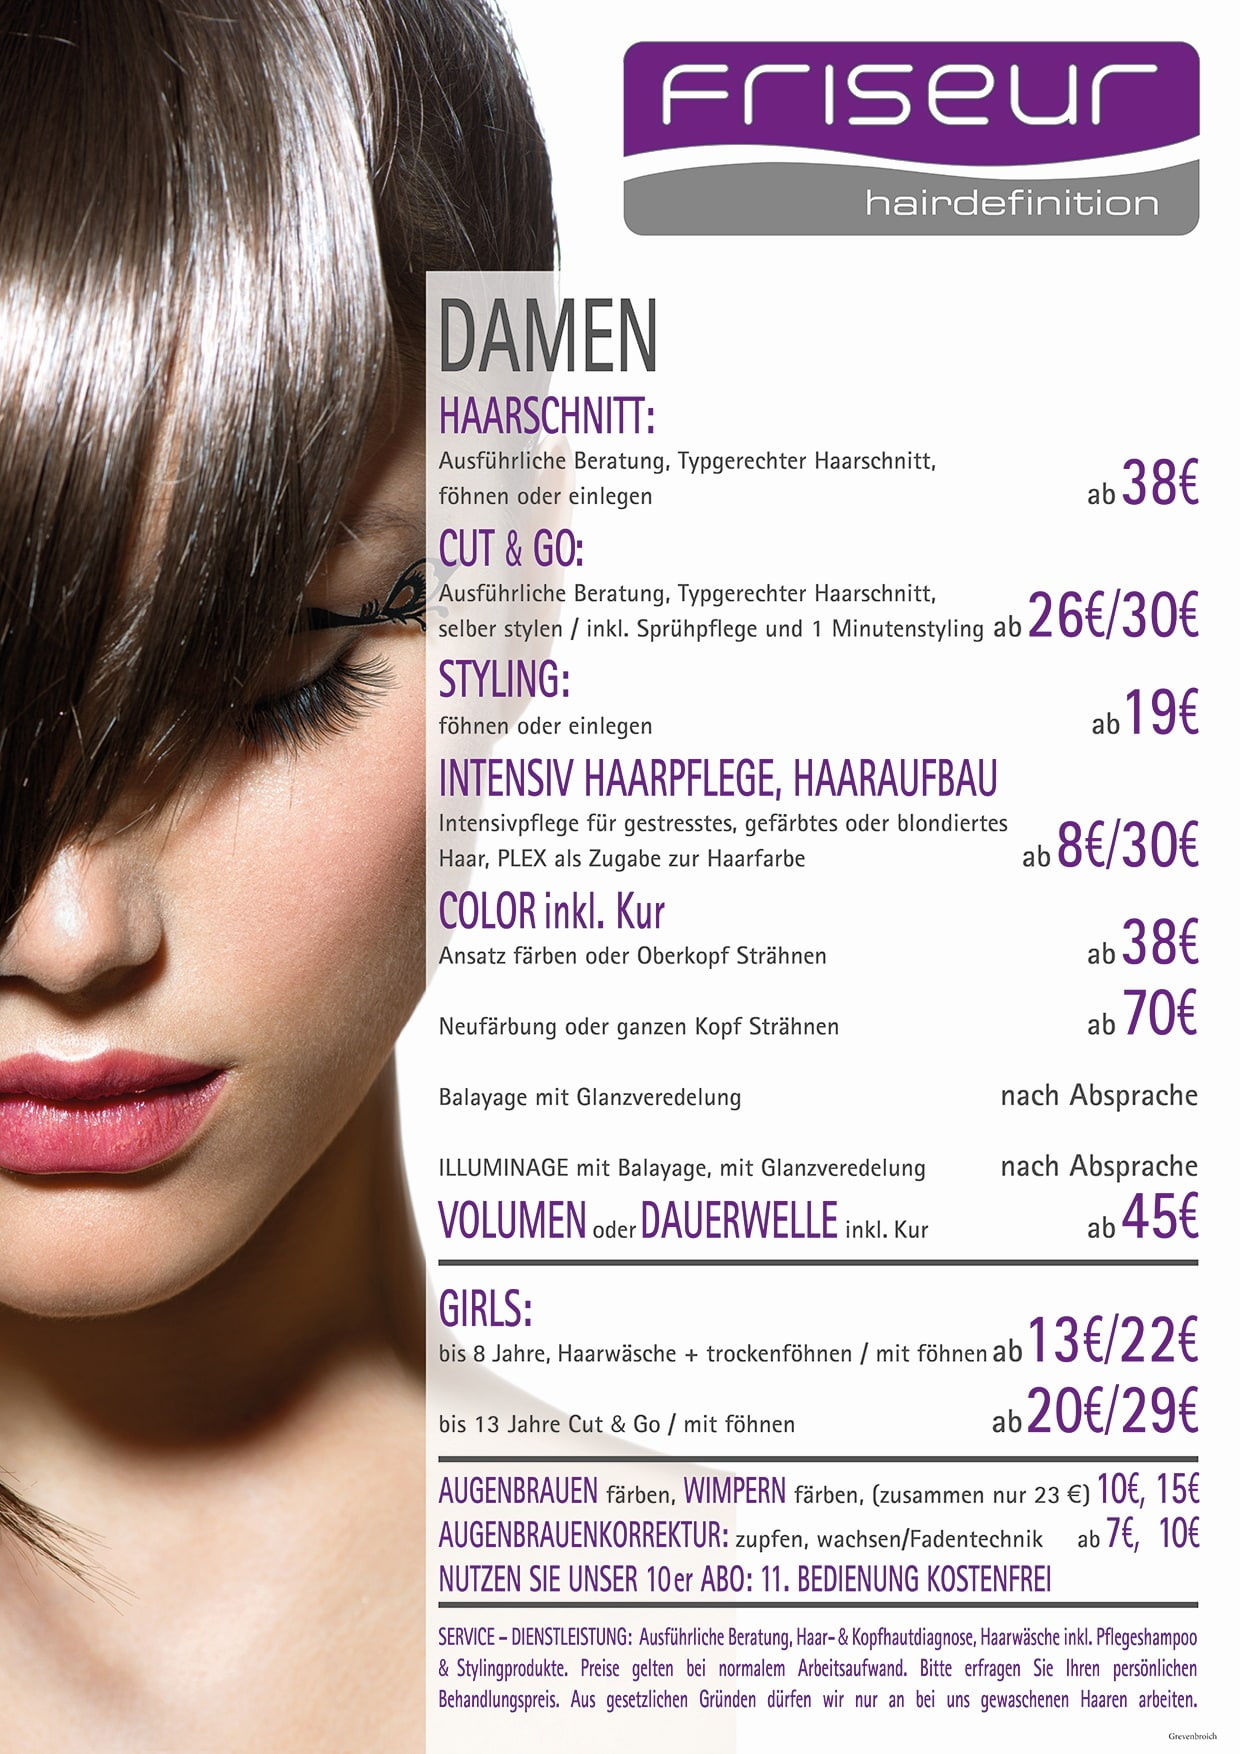 friseur hairdefintion grevenbroich damen 29 04 2020